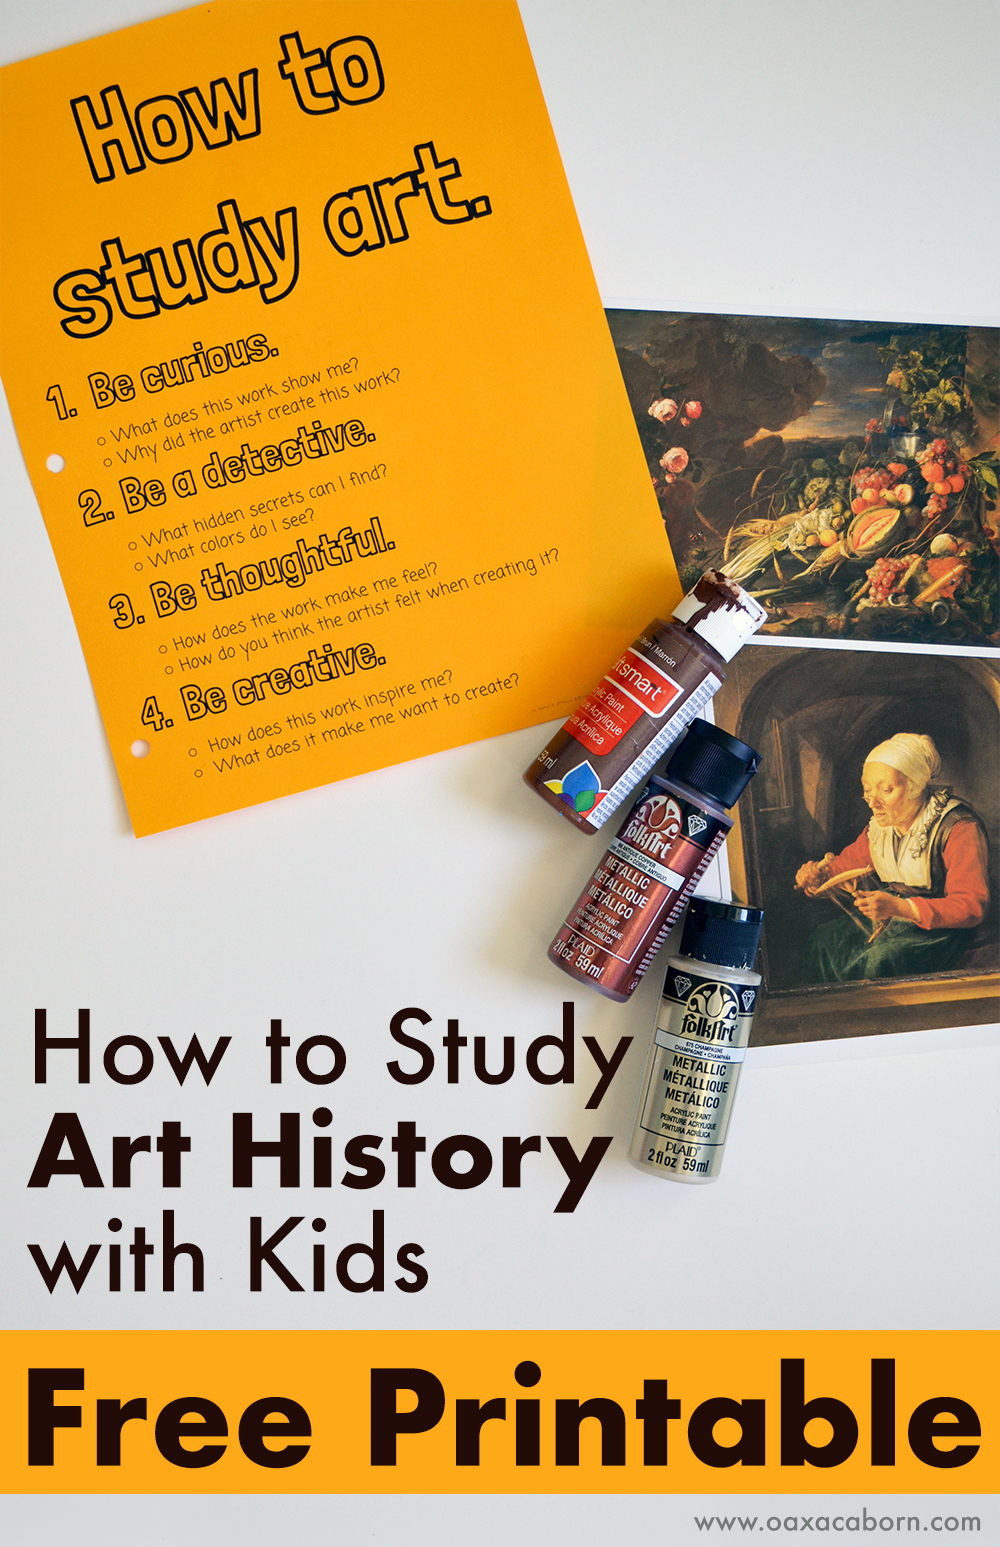 How to Study Art History with Kids: FREE Printable from the Oaxacaborn blog